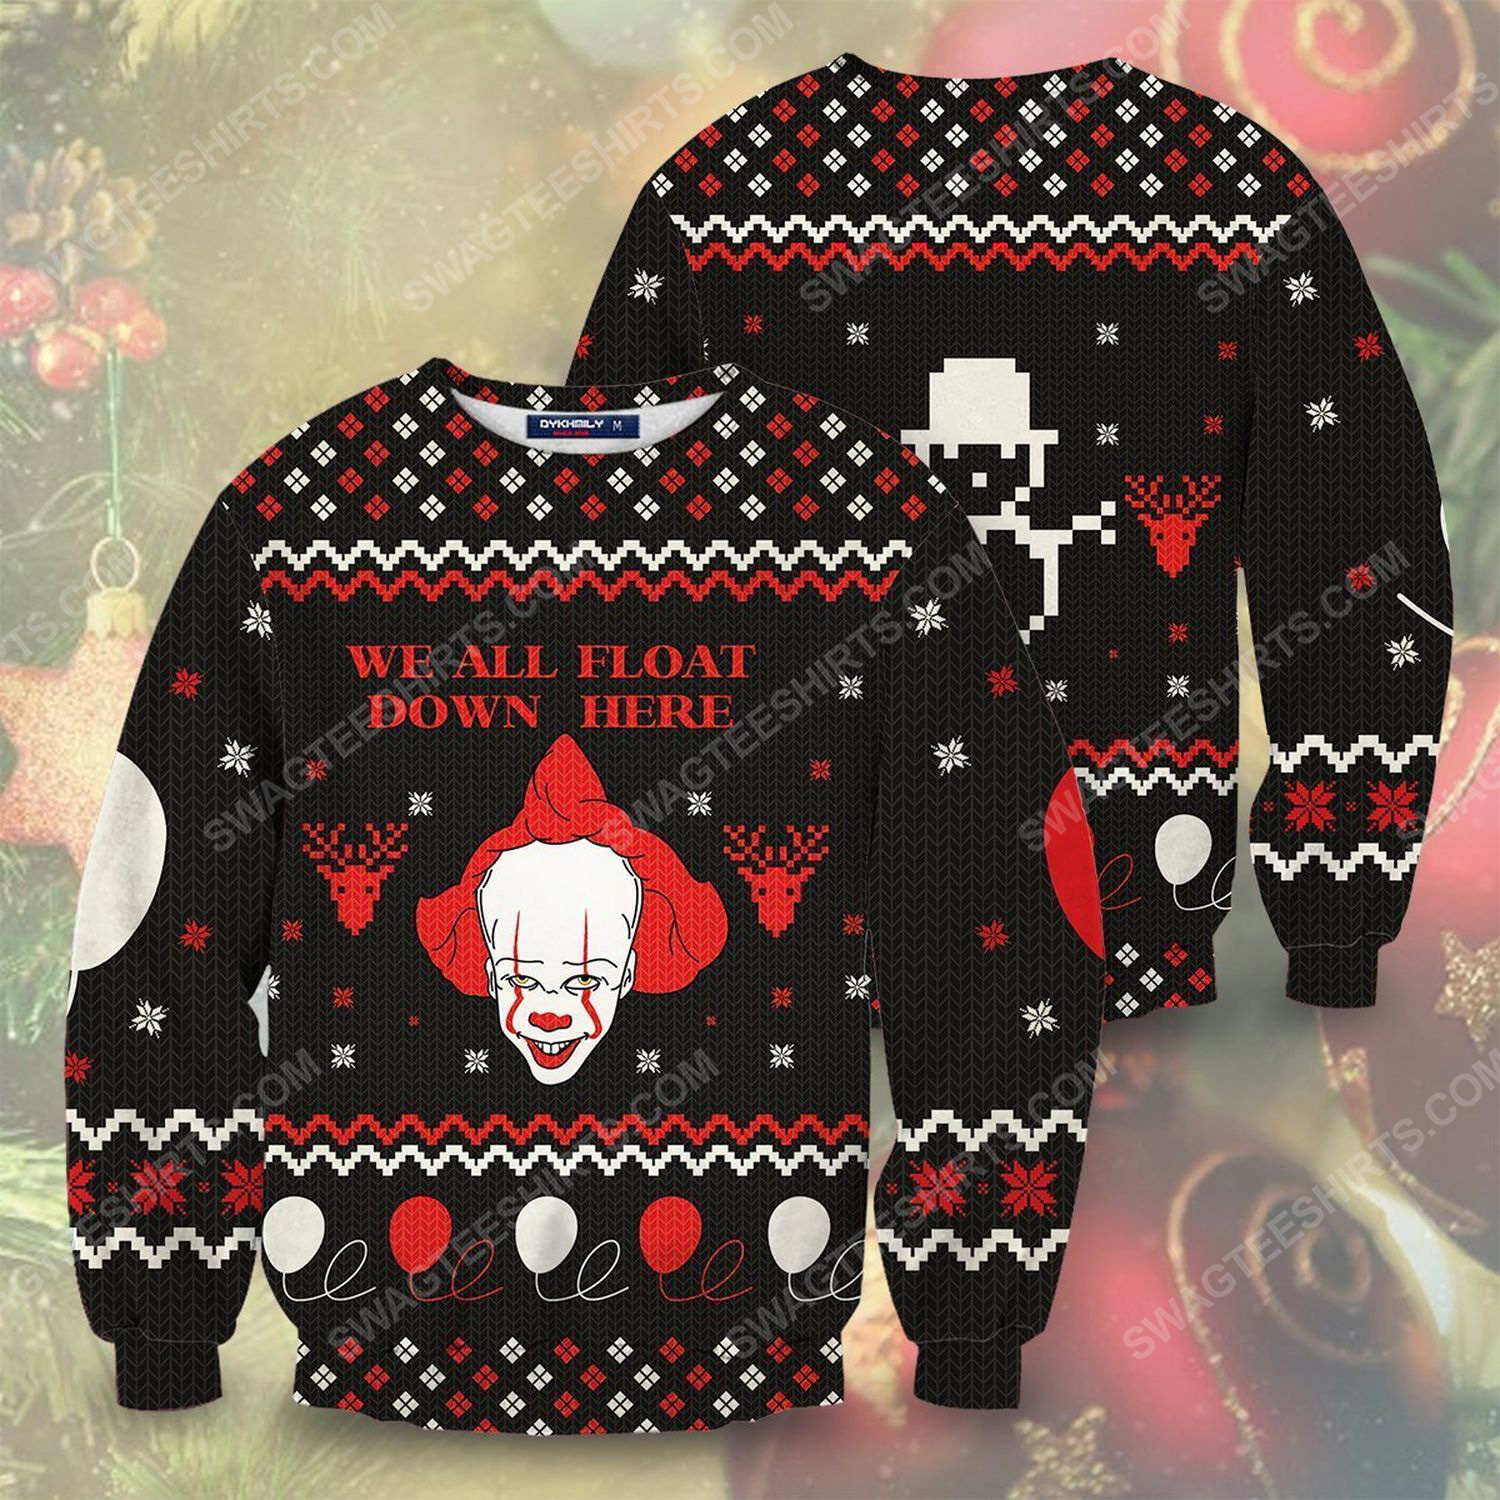 IT pennywise we all float down here ugly christmas sweater 1